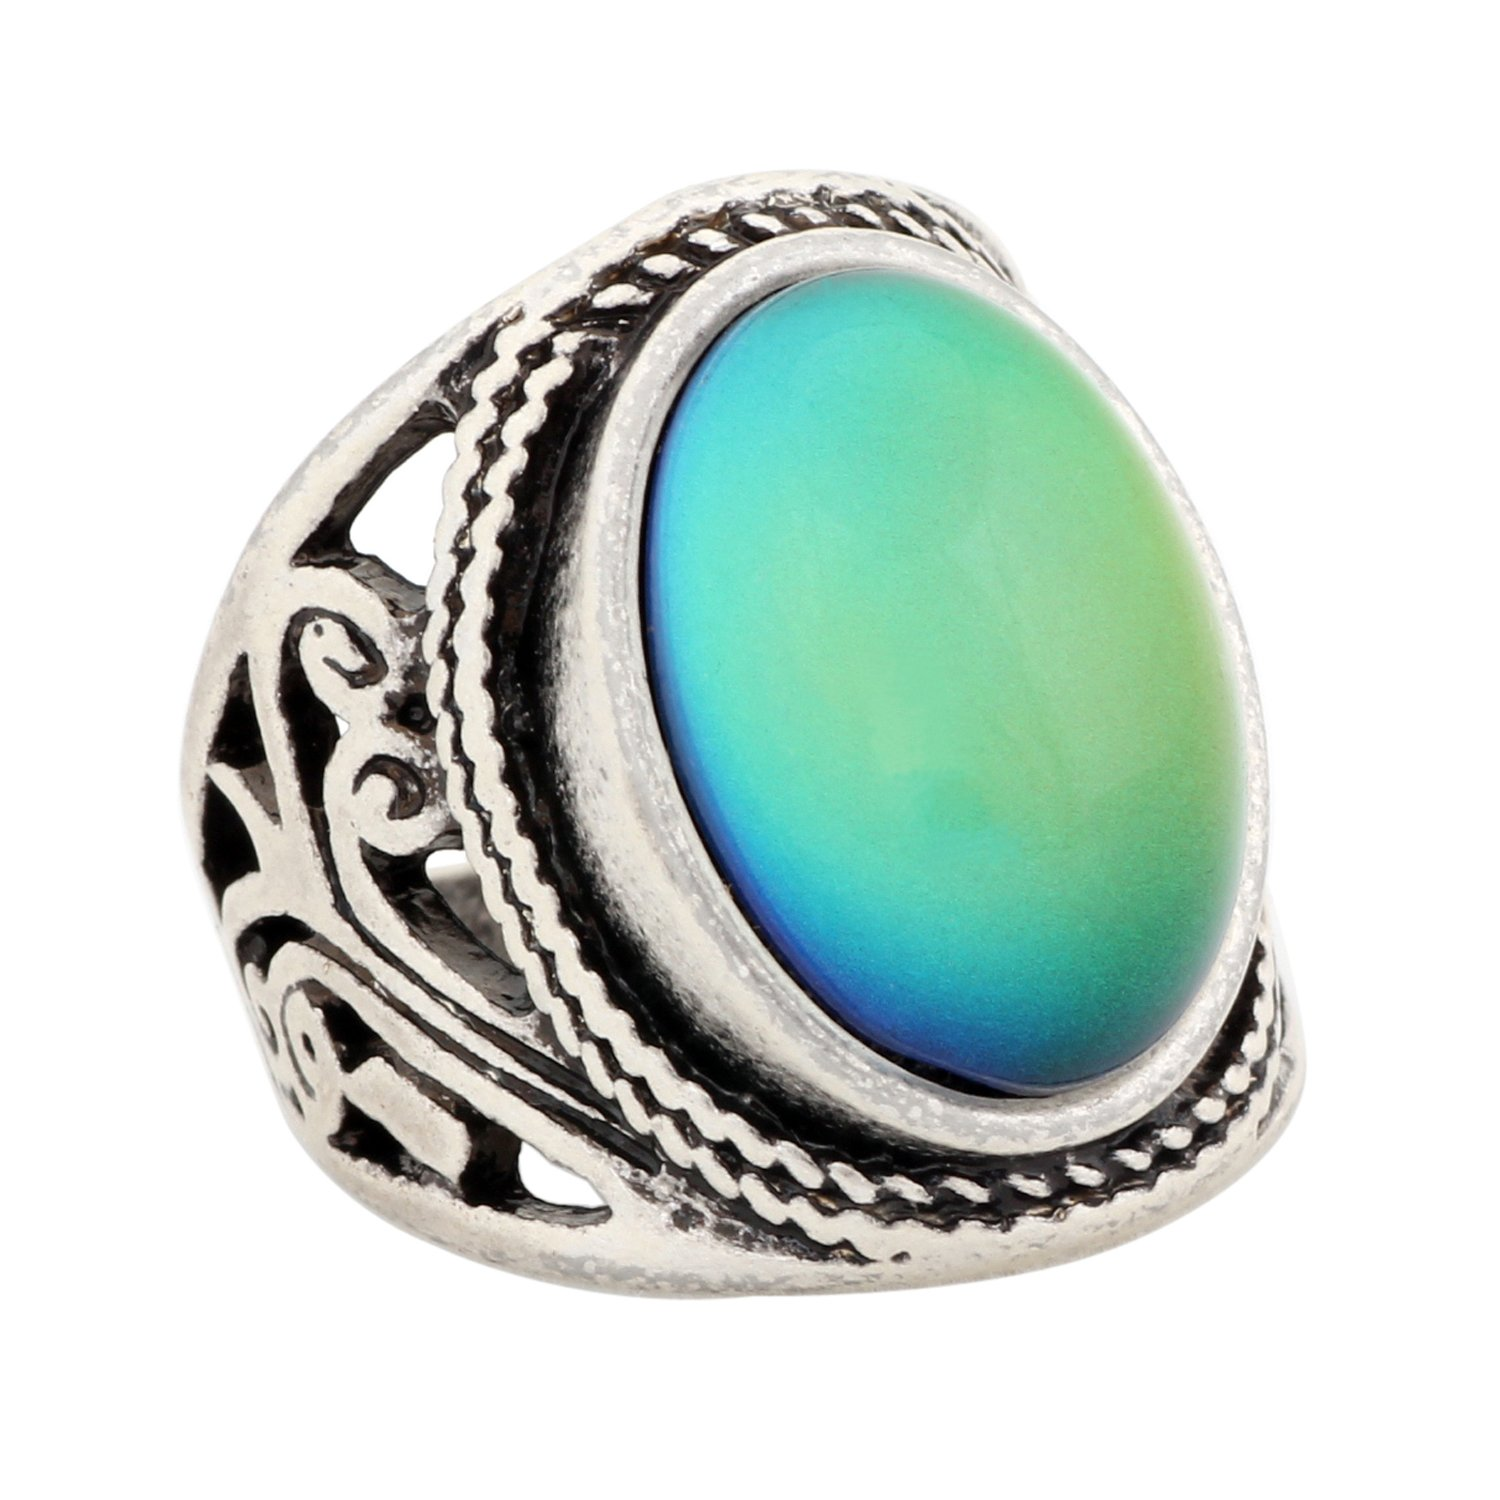 MOJO JEWELRY Mood Ring Changing Color for Adults Antique Sterling Silver Vintage Statement Rings Women RS019 MJ-RS019